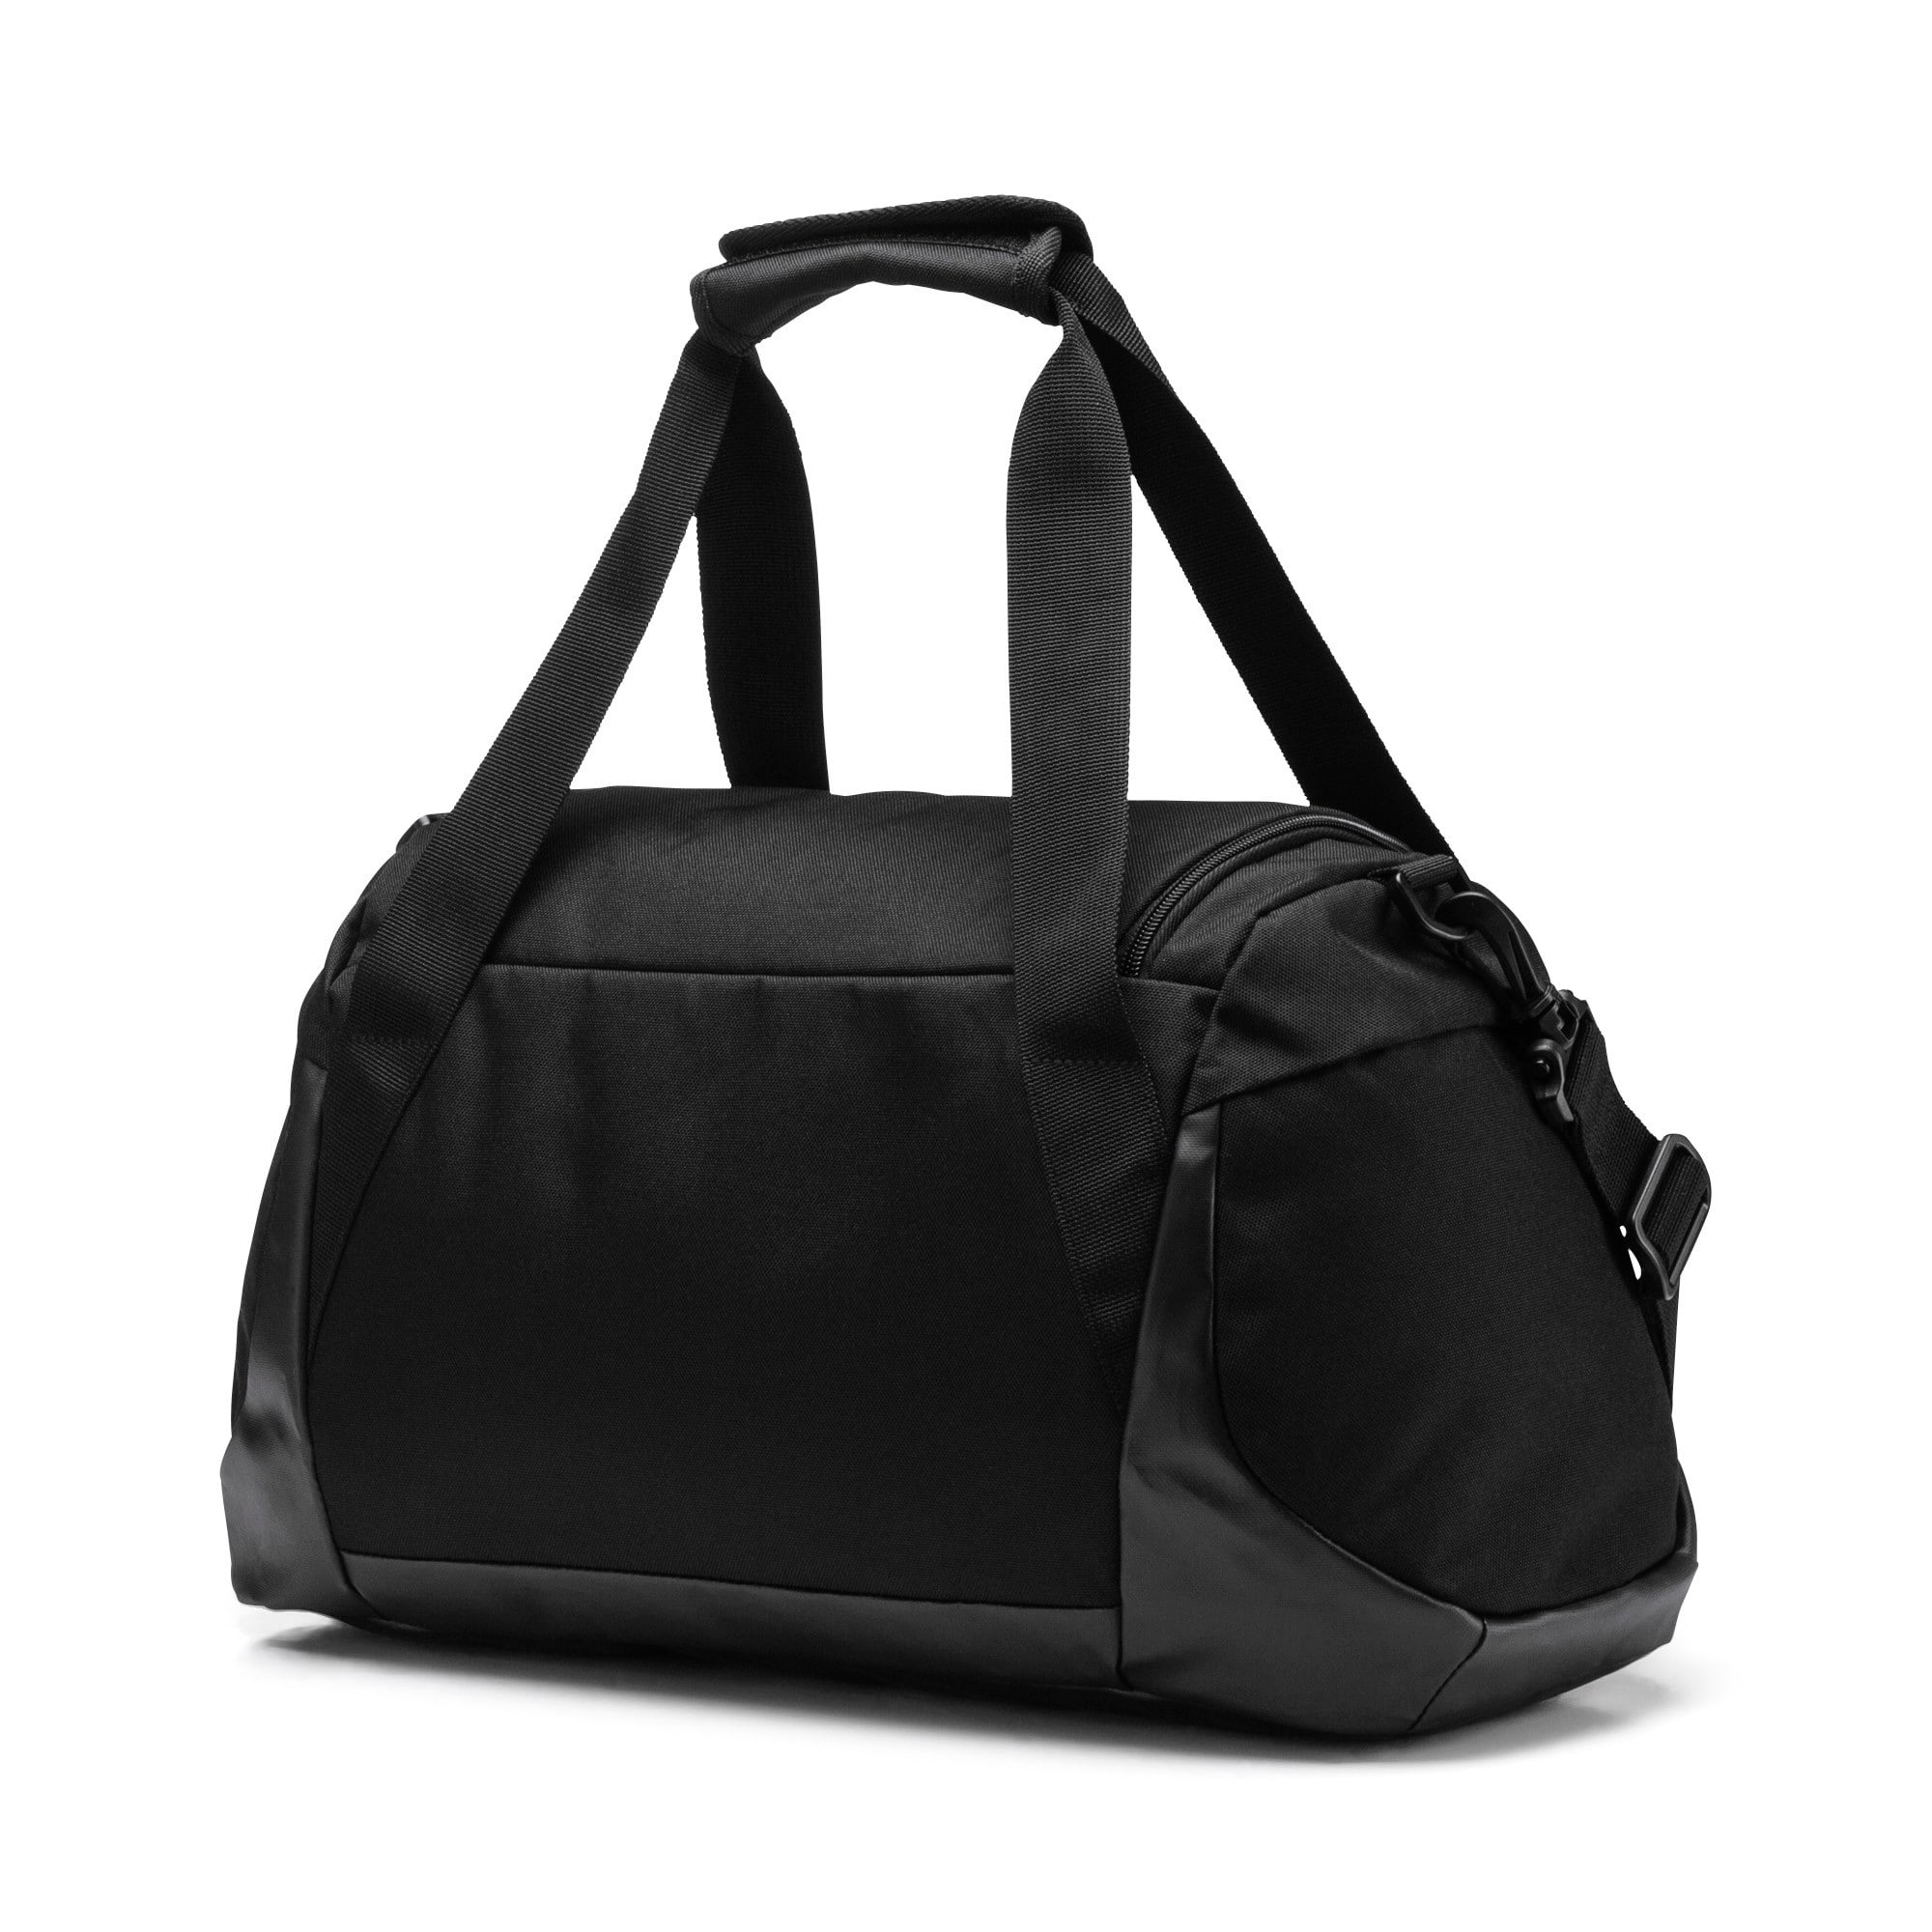 Thumbnail 2 of Gym Duffel Bag, Puma Black, medium